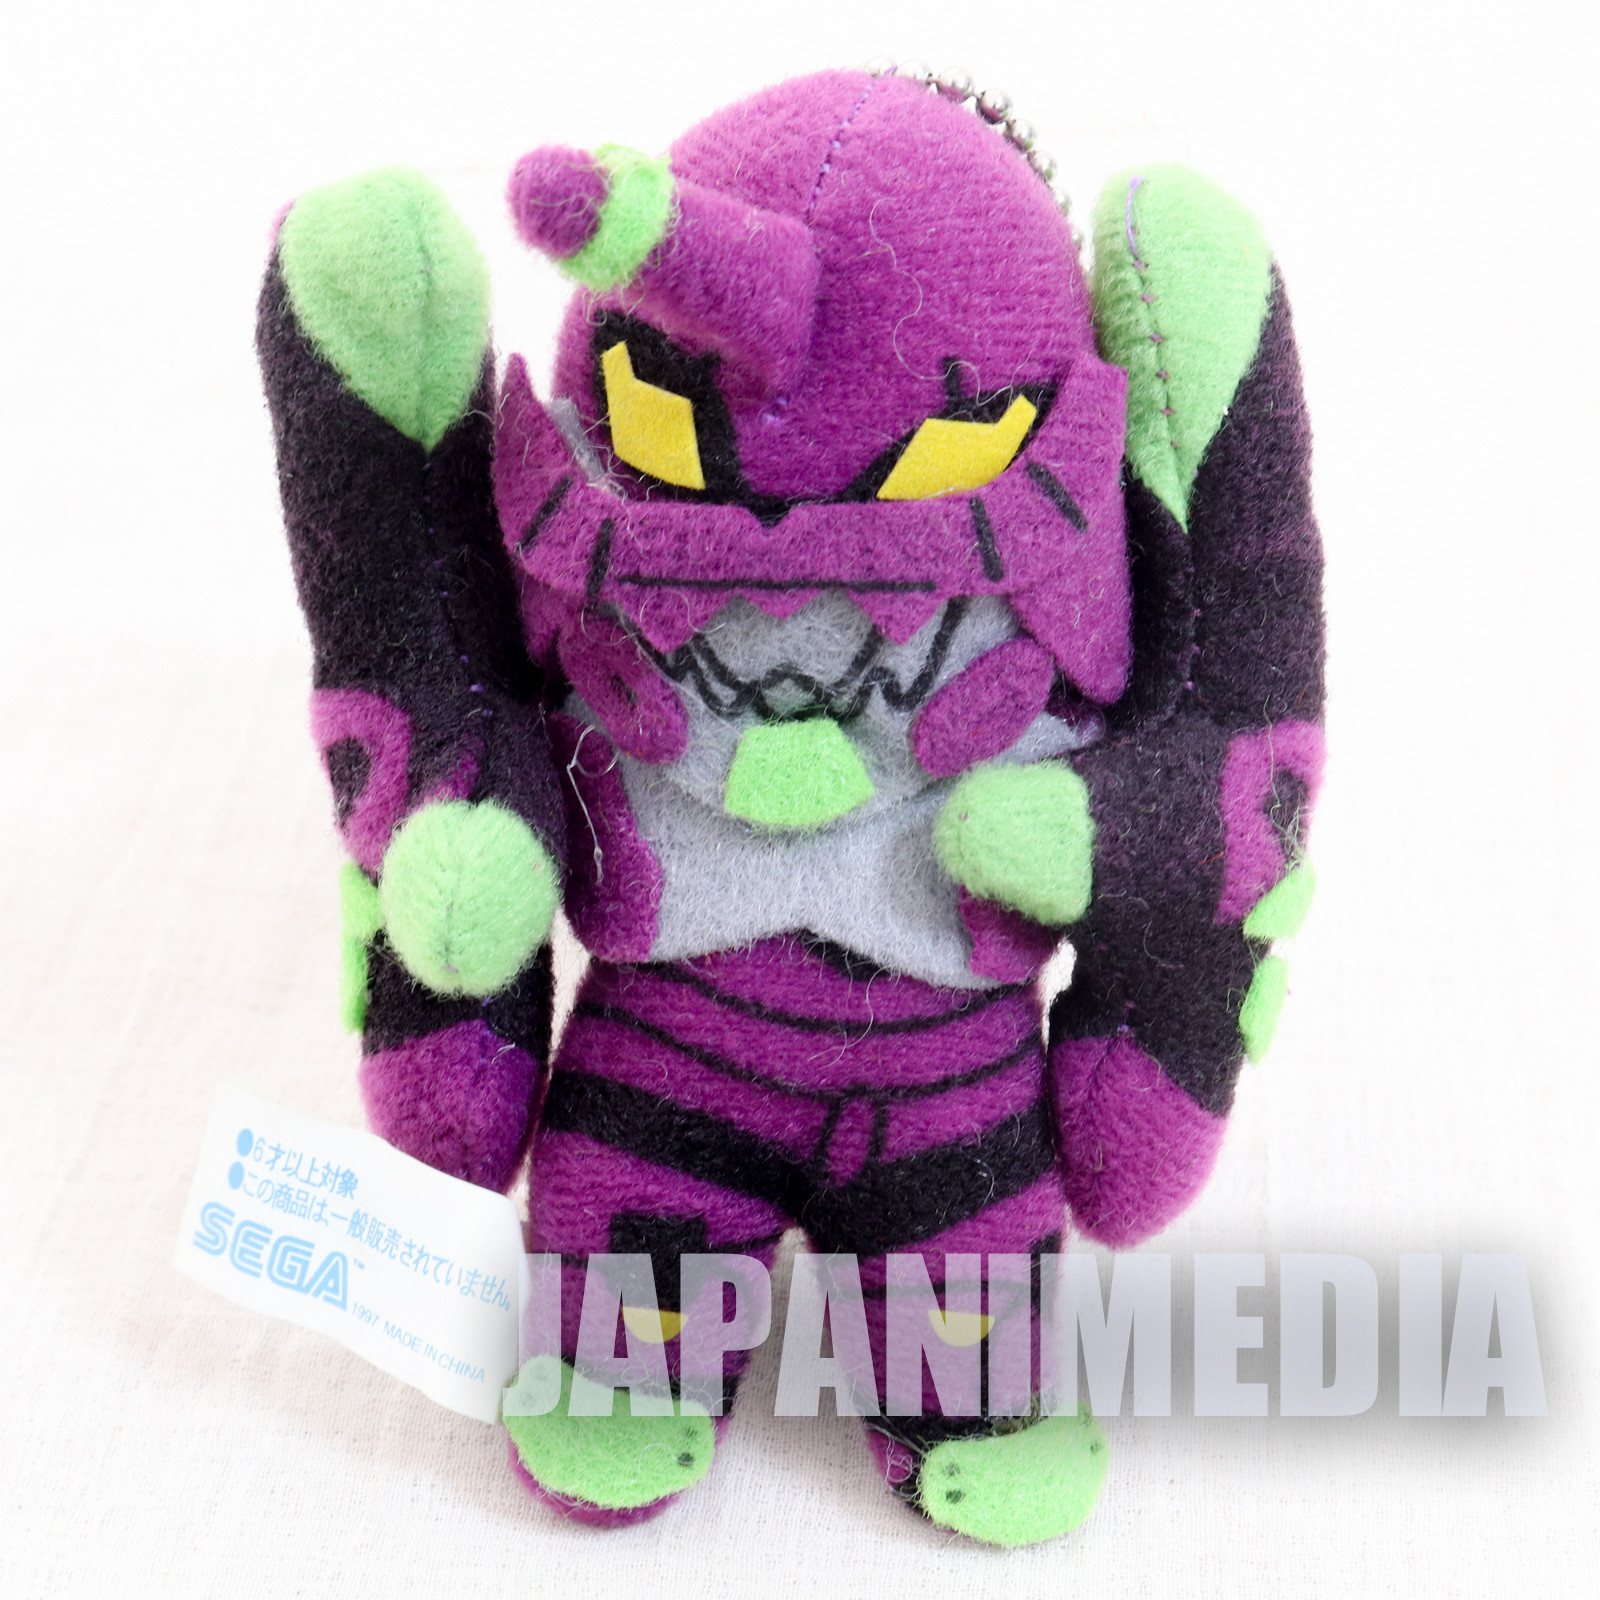 Evangelion EVA-01 Mini Plush Doll Figure Ball chain SEGA JAPAN